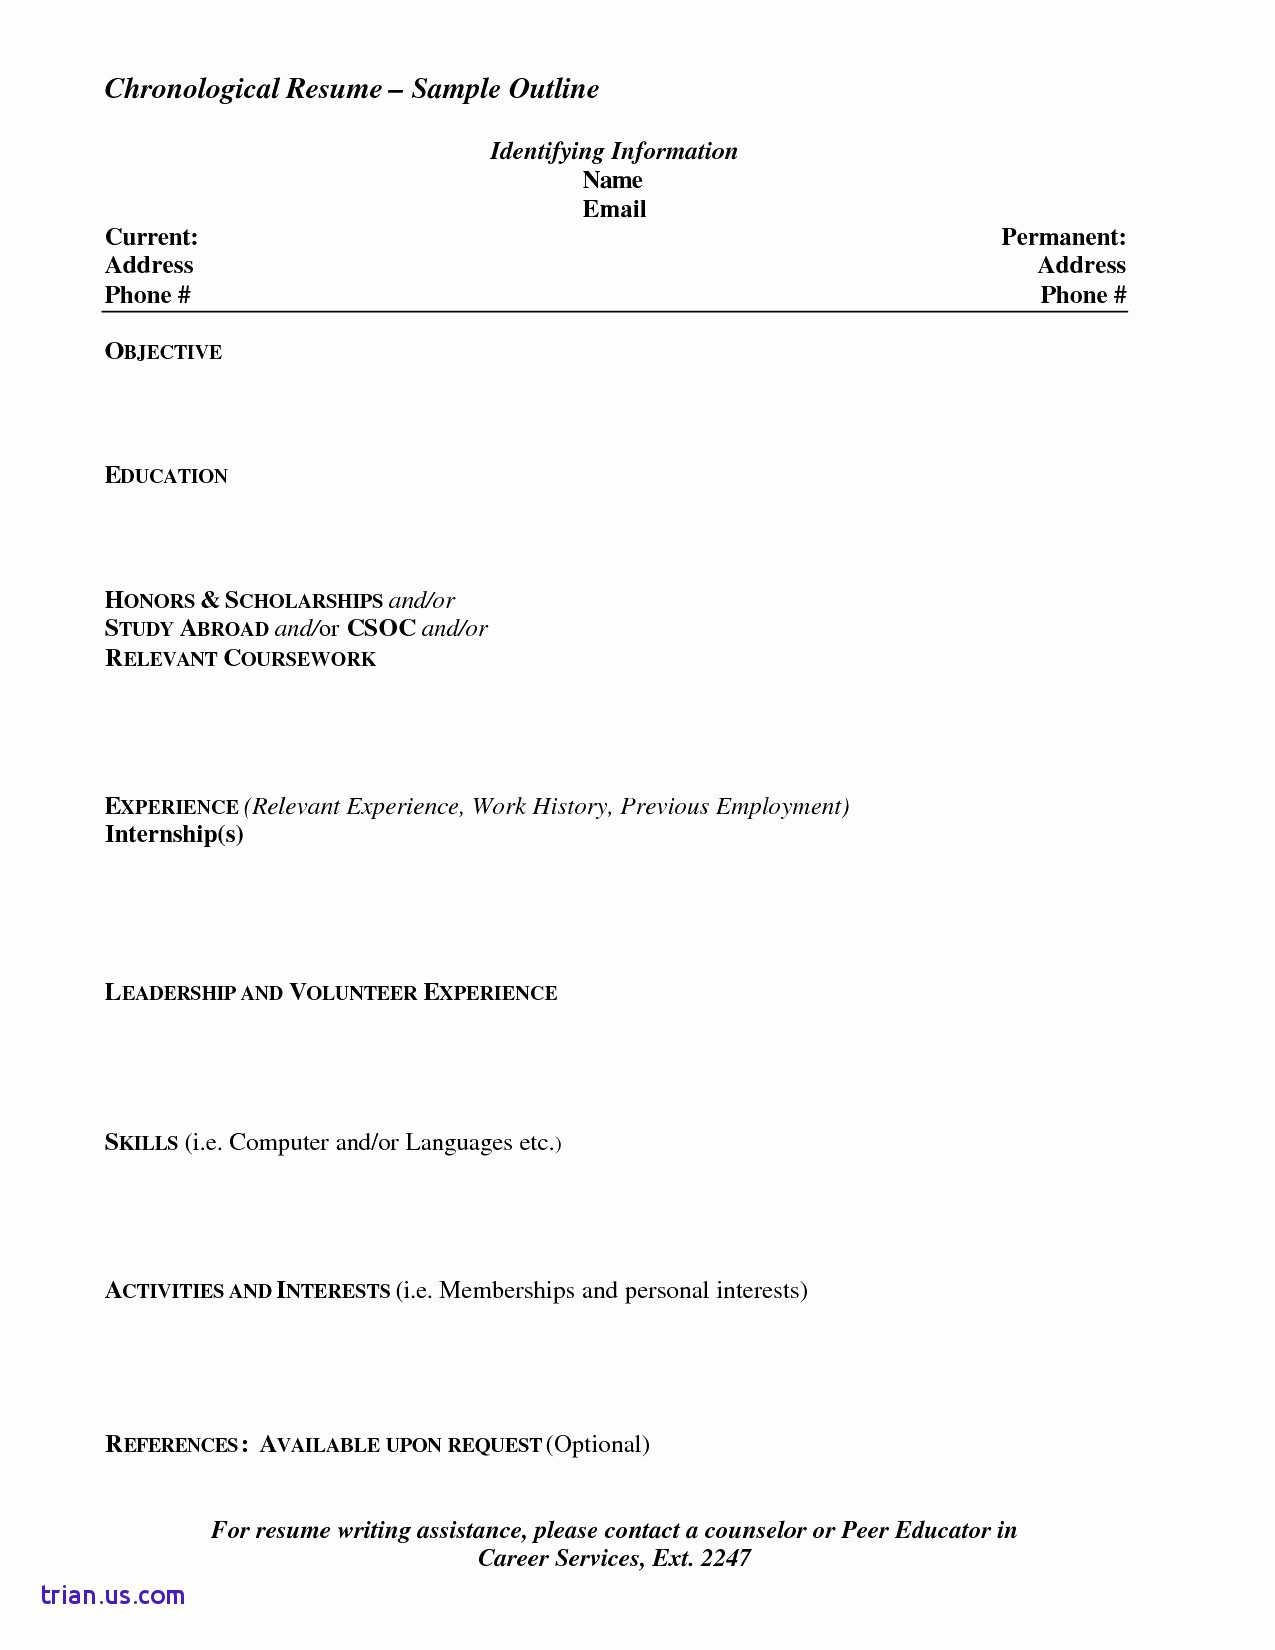 Resume Writer Free - Resume and Cover Letter Writers Free Creative Resume Writing Tips